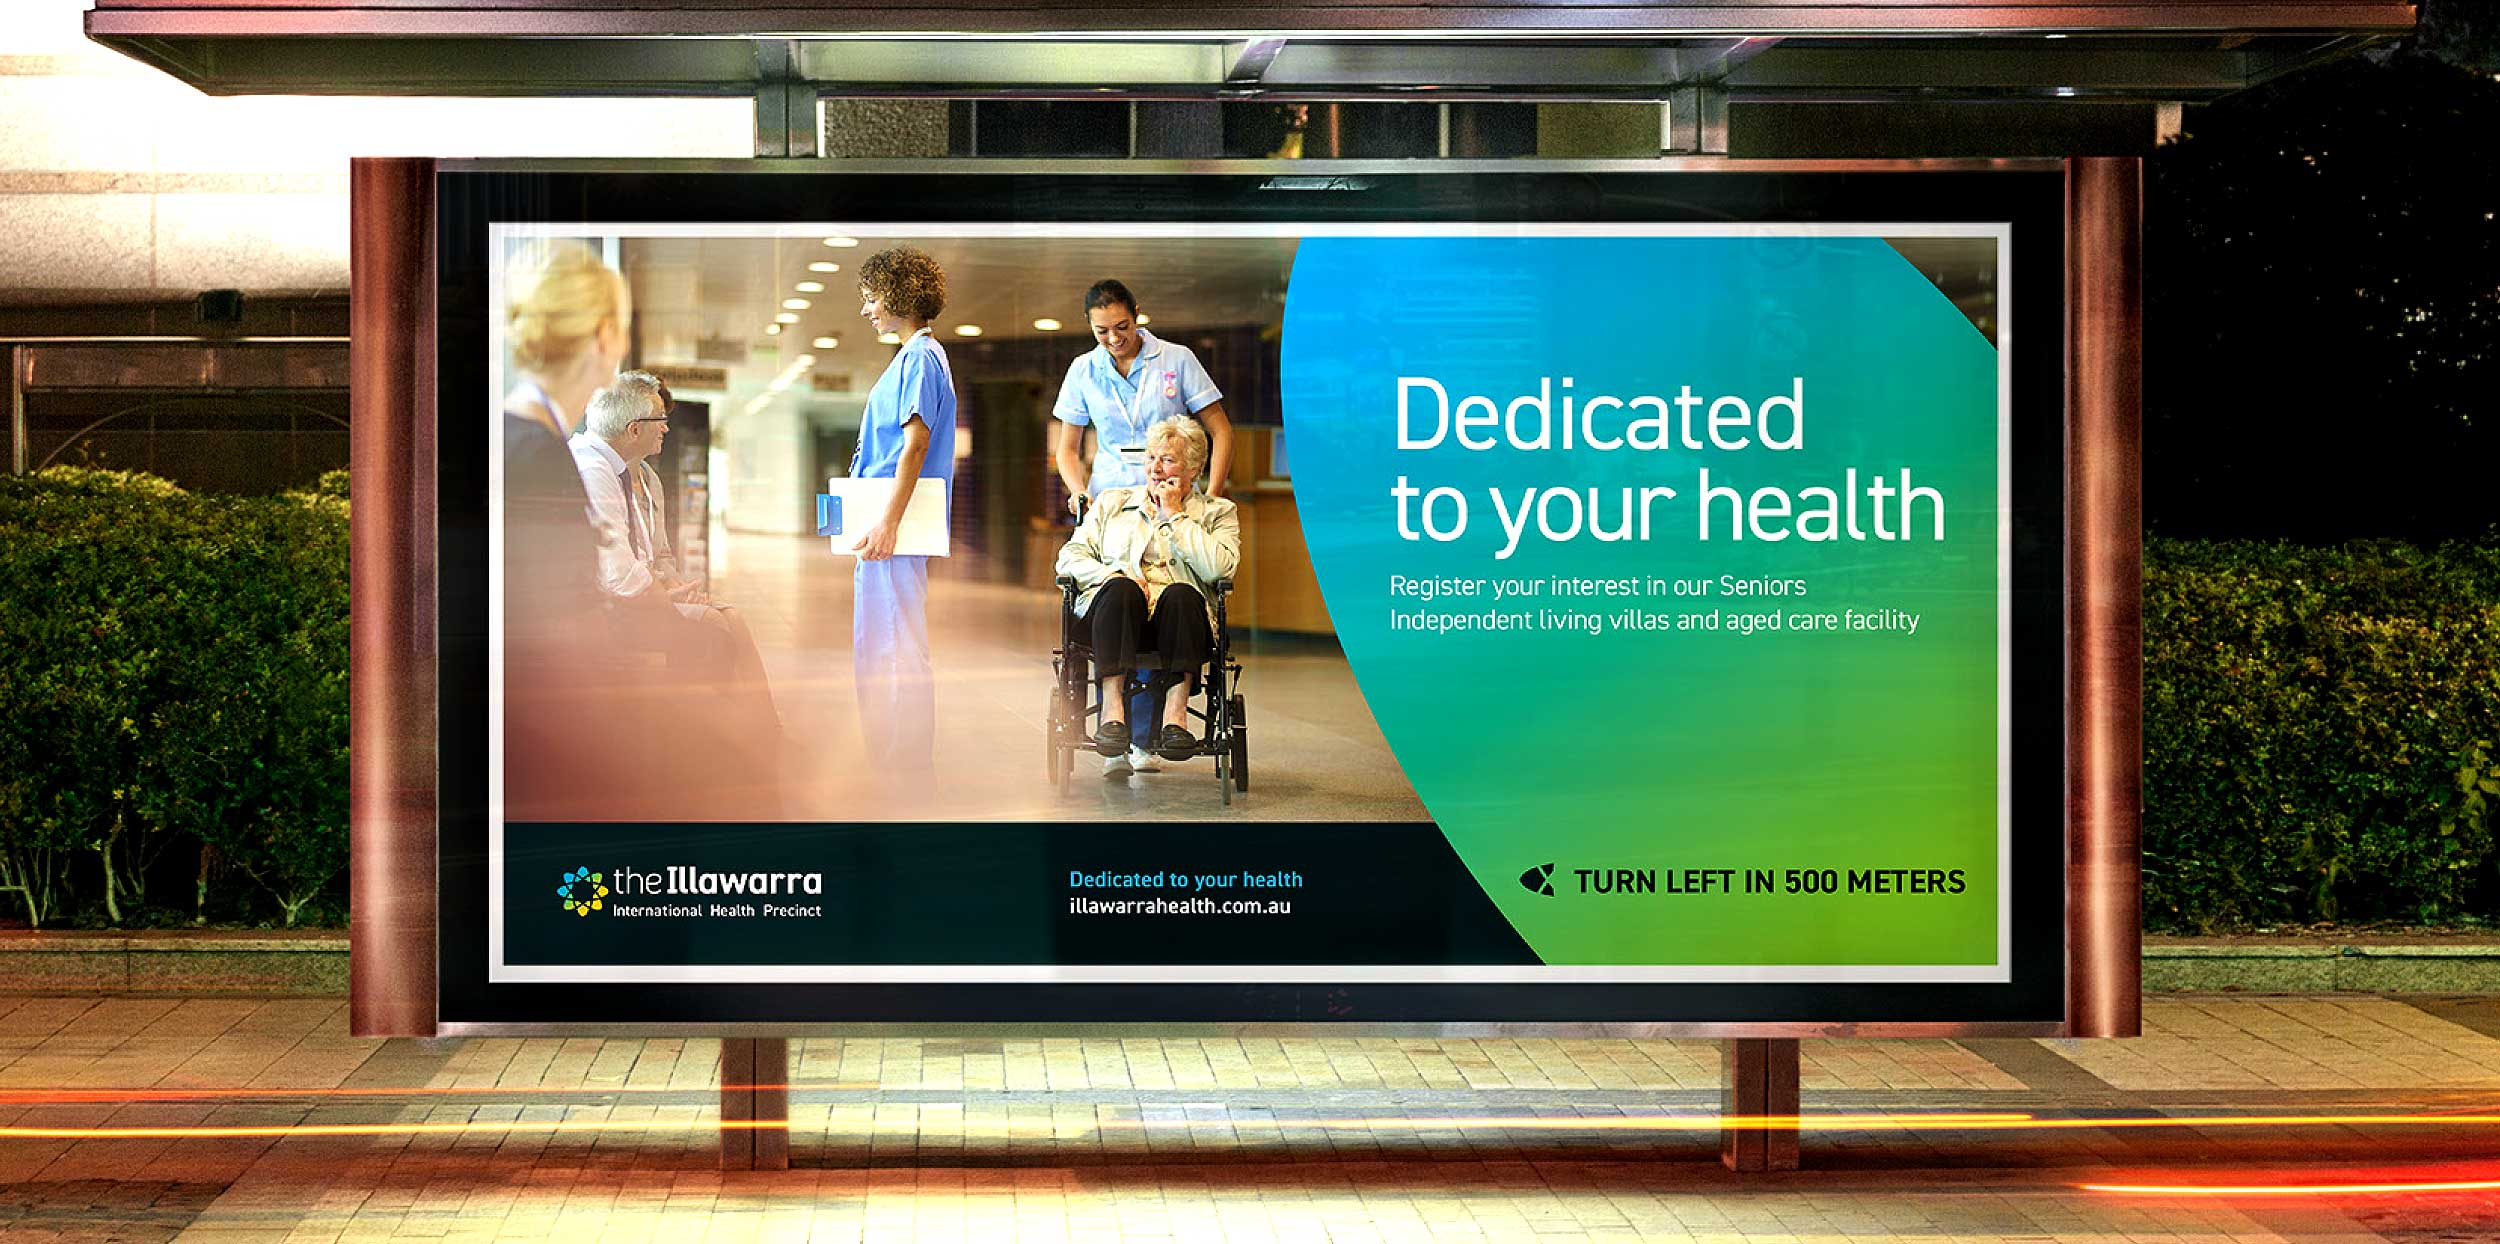 Illawarra-International-Health-Precinct-Hospital-Branding-Handle-Sydney-Branding_9.jpg